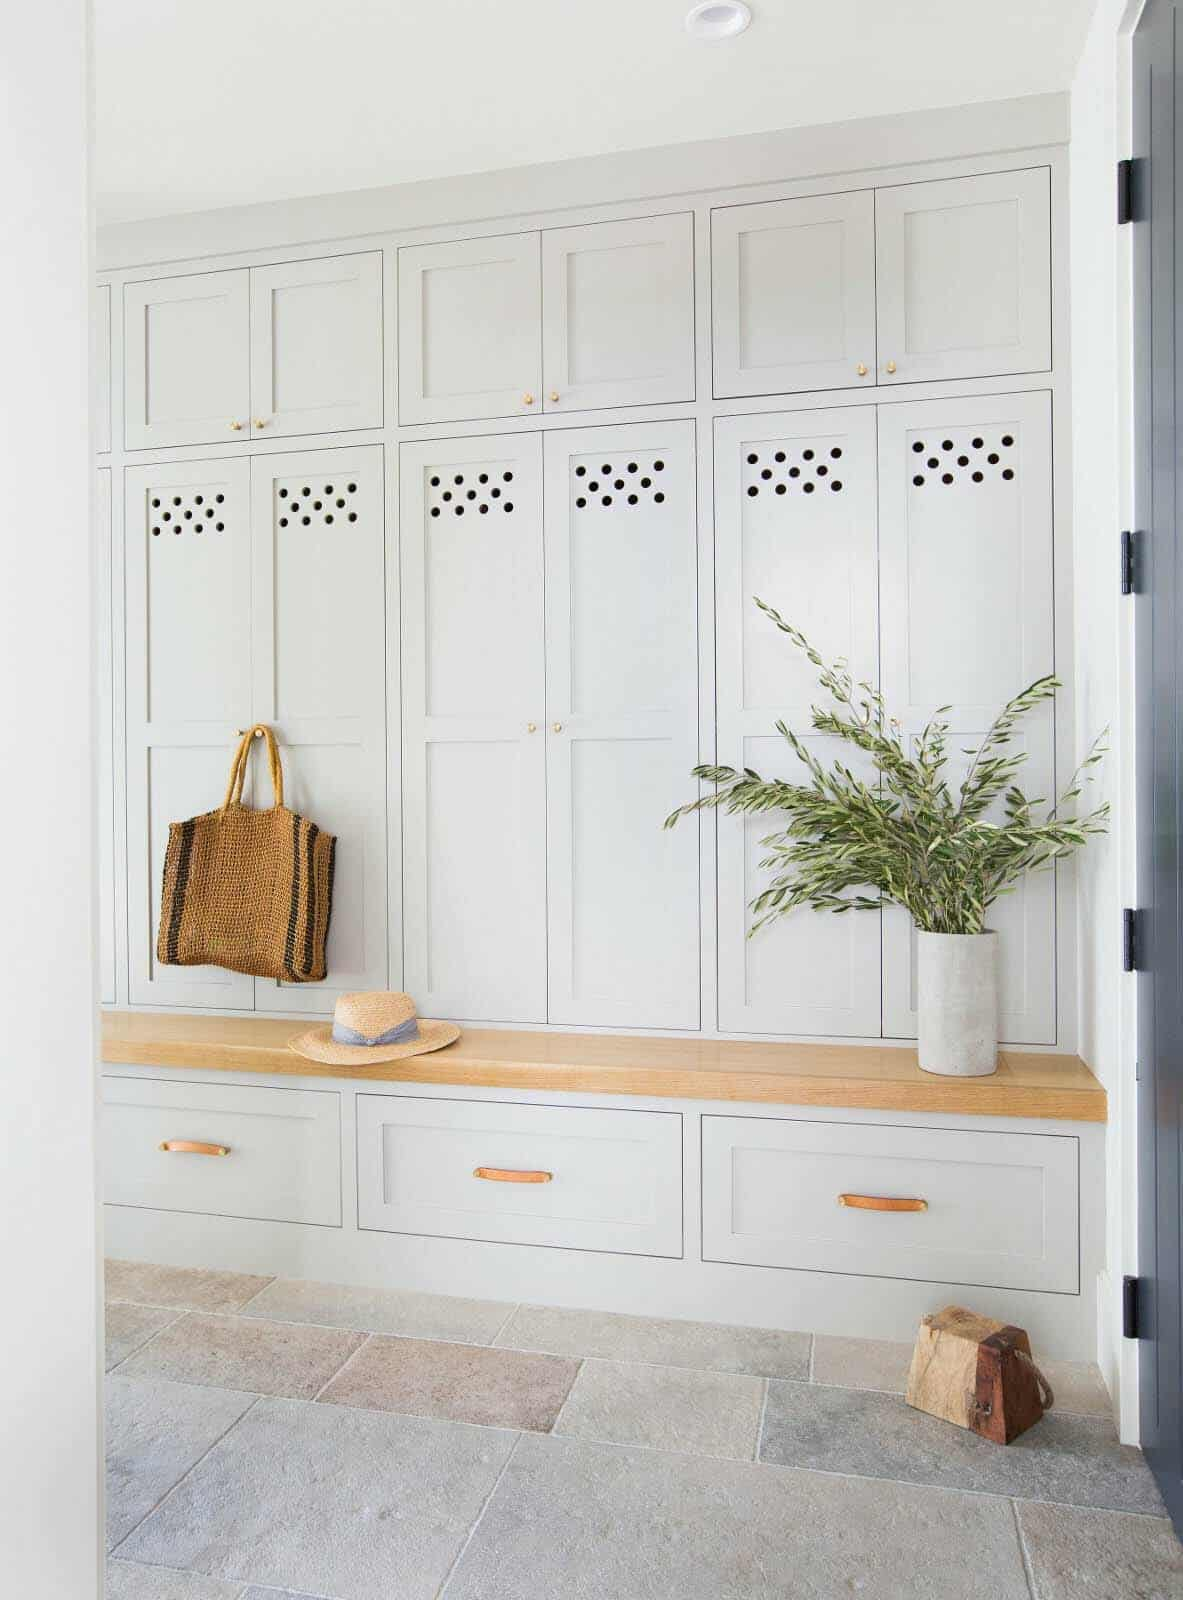 1568121741 80 25 inspiring mudroom ideas for every home and style - 25 Inspiring Mudroom Ideas For Every Home And Style